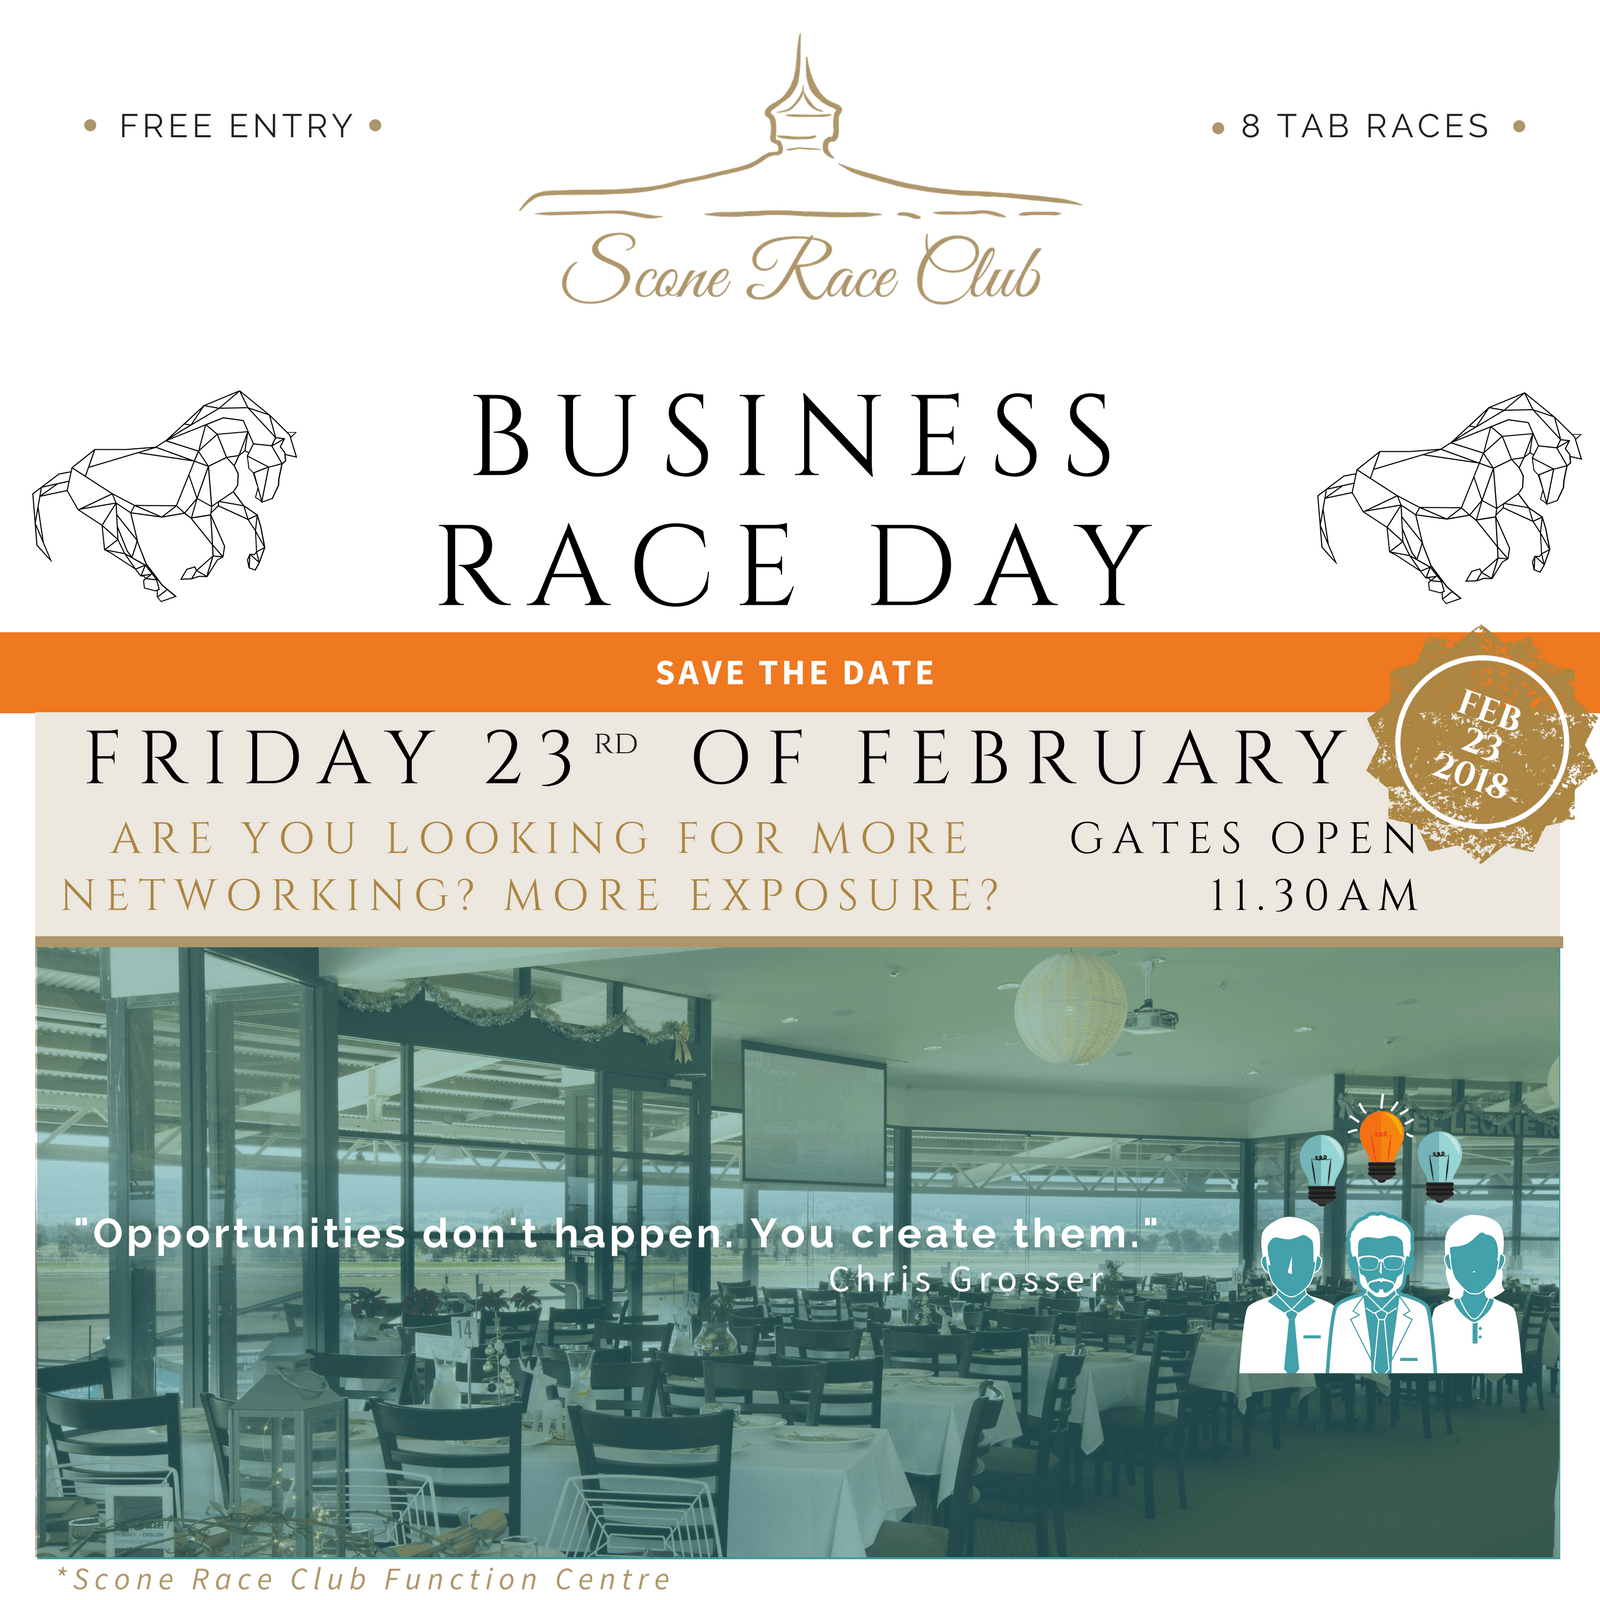 Business Race Day - 23 February 2018